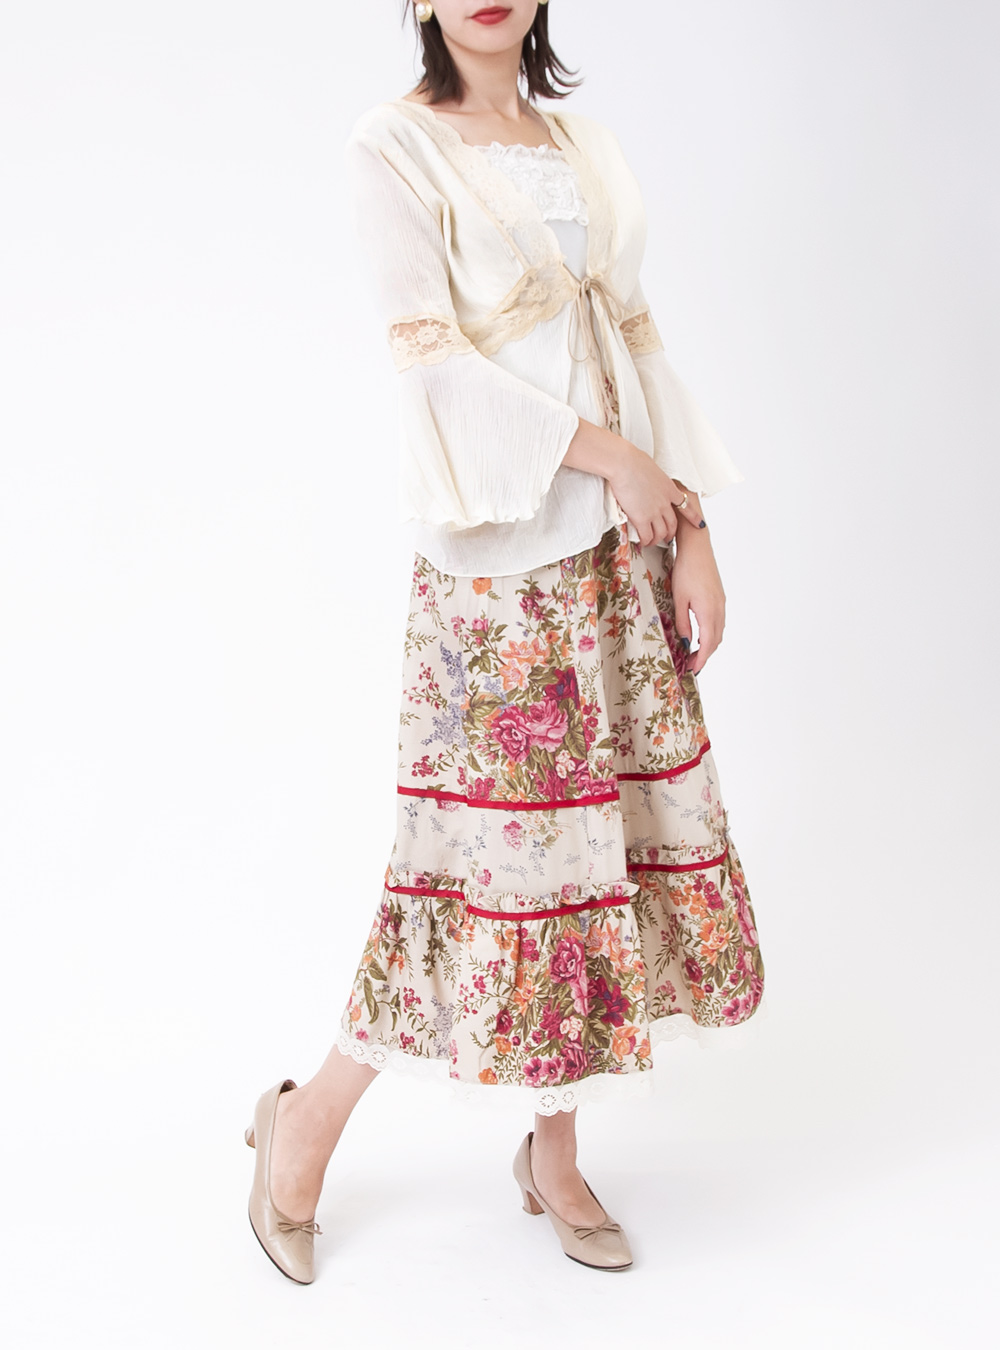 Flower Lace Ribbon Design Skirt